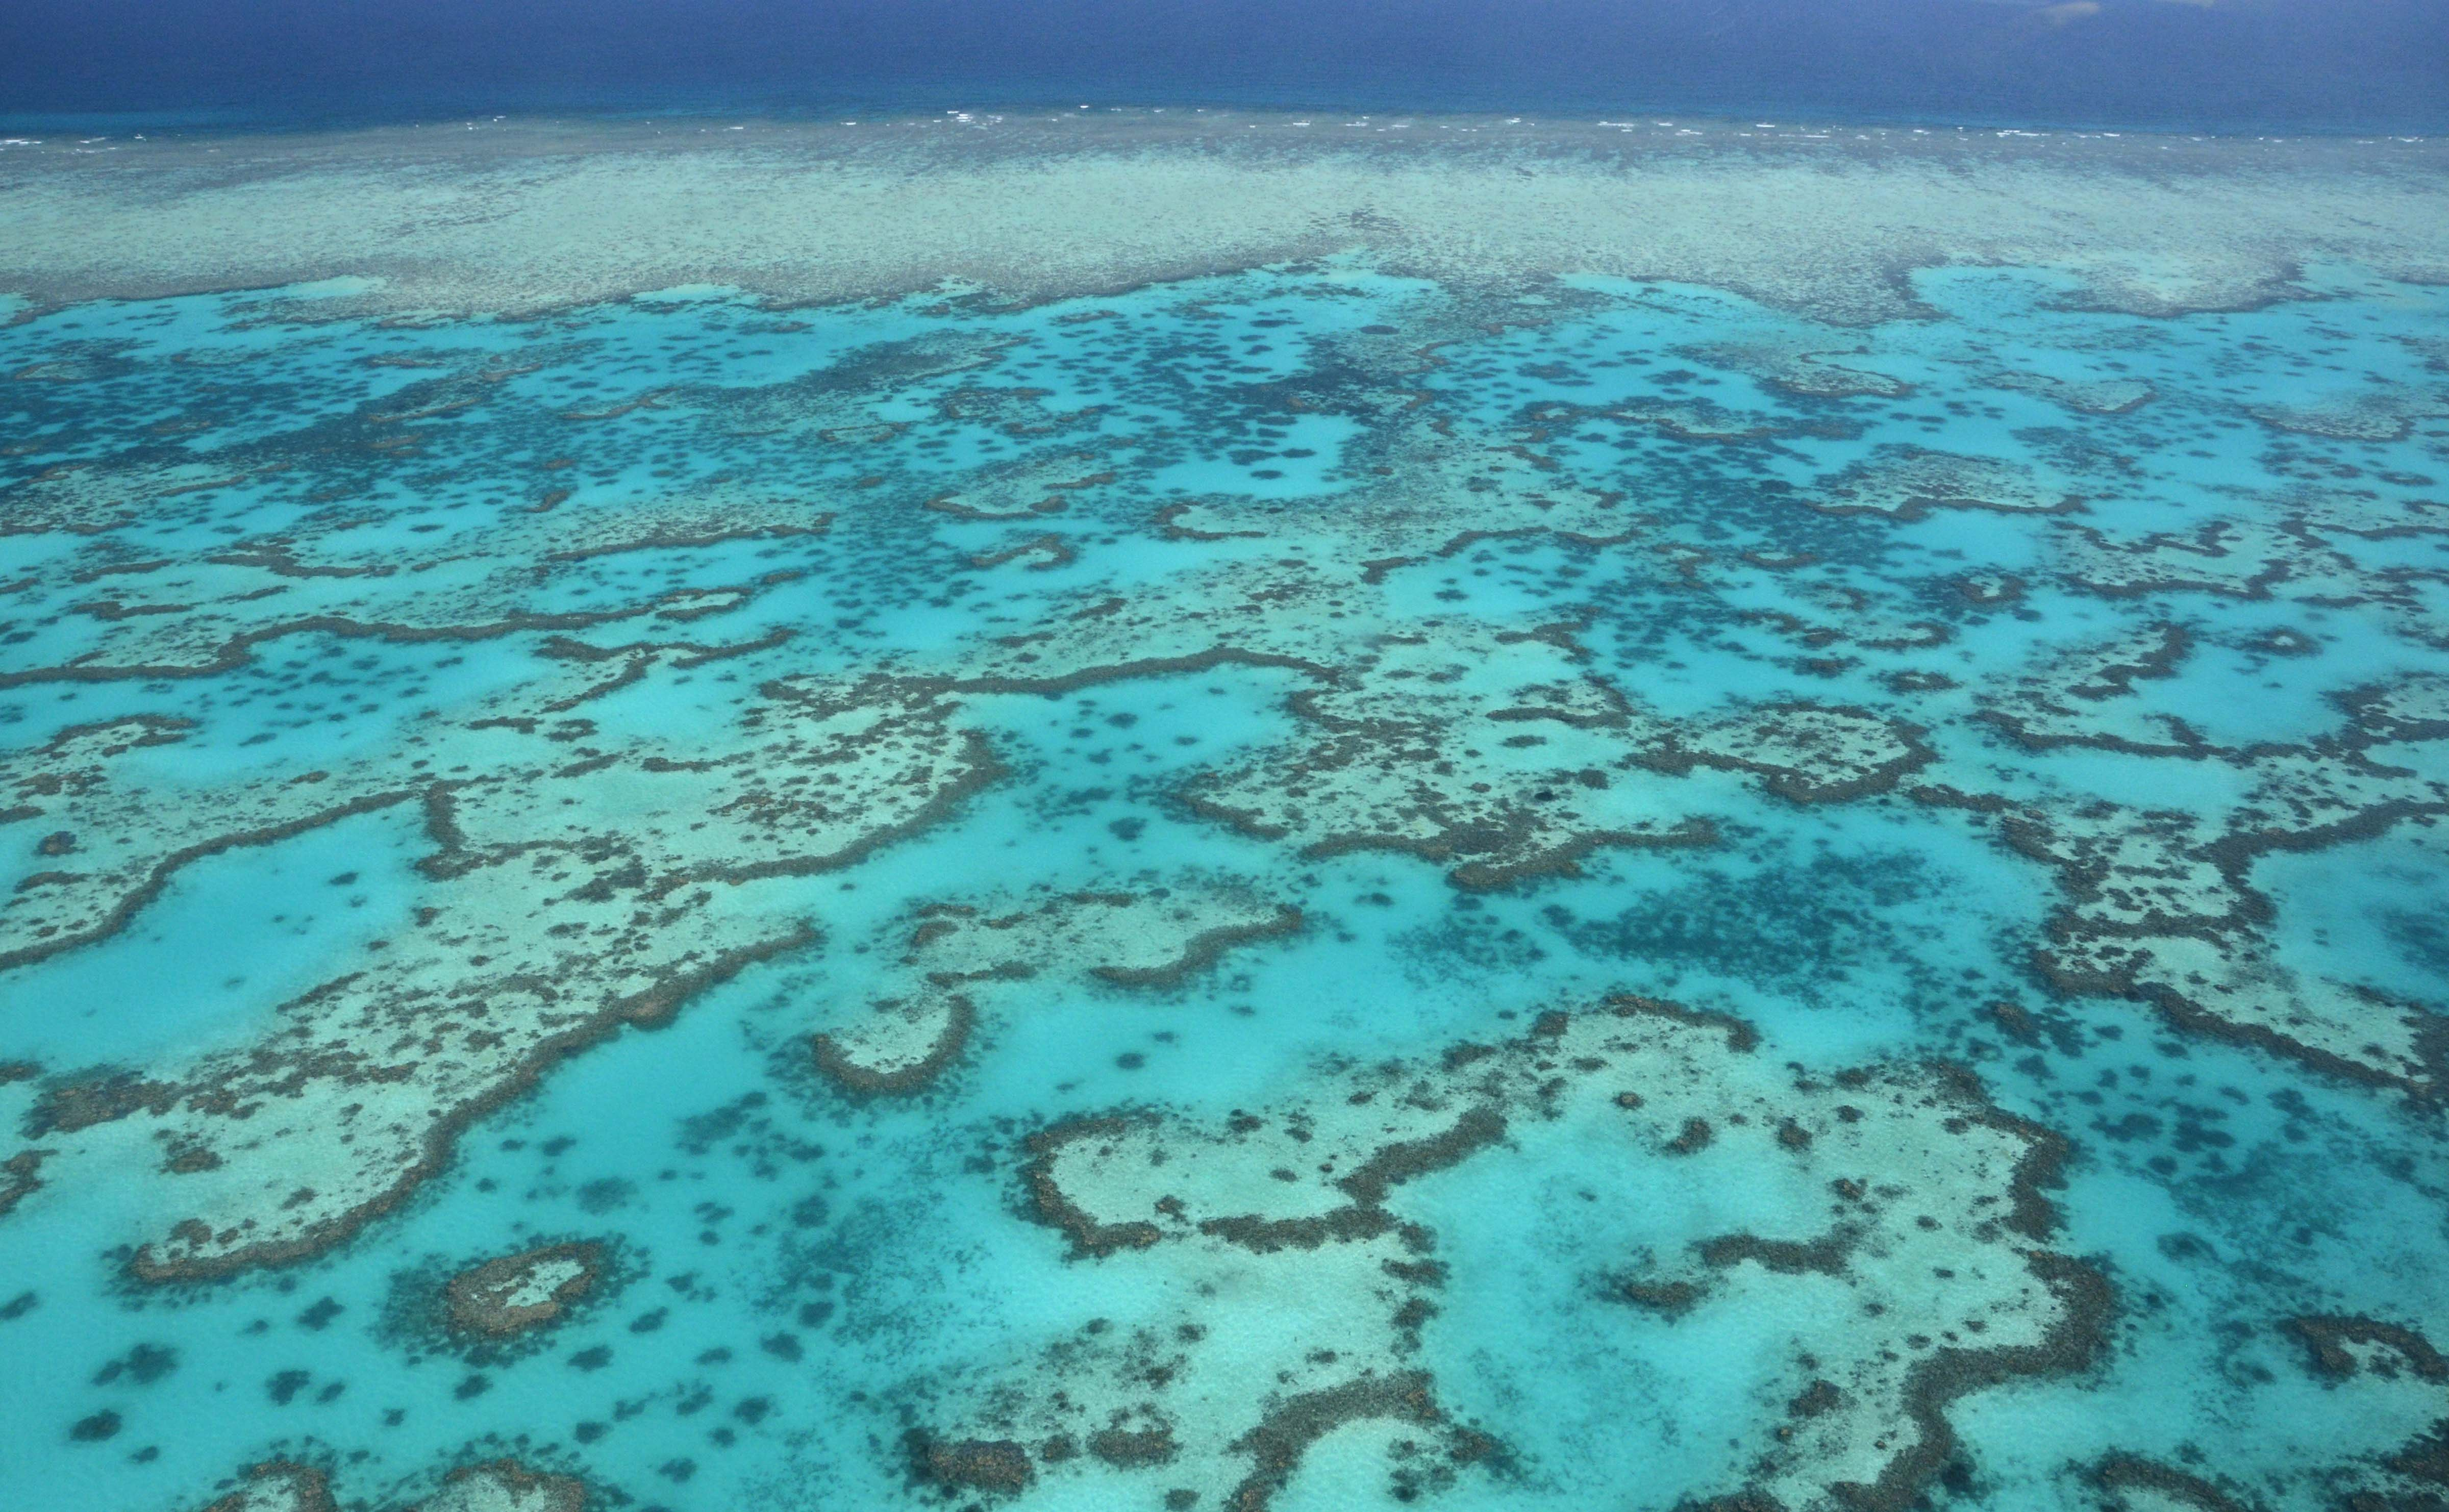 Our acid oceans will dissolve coral reef sands within decades